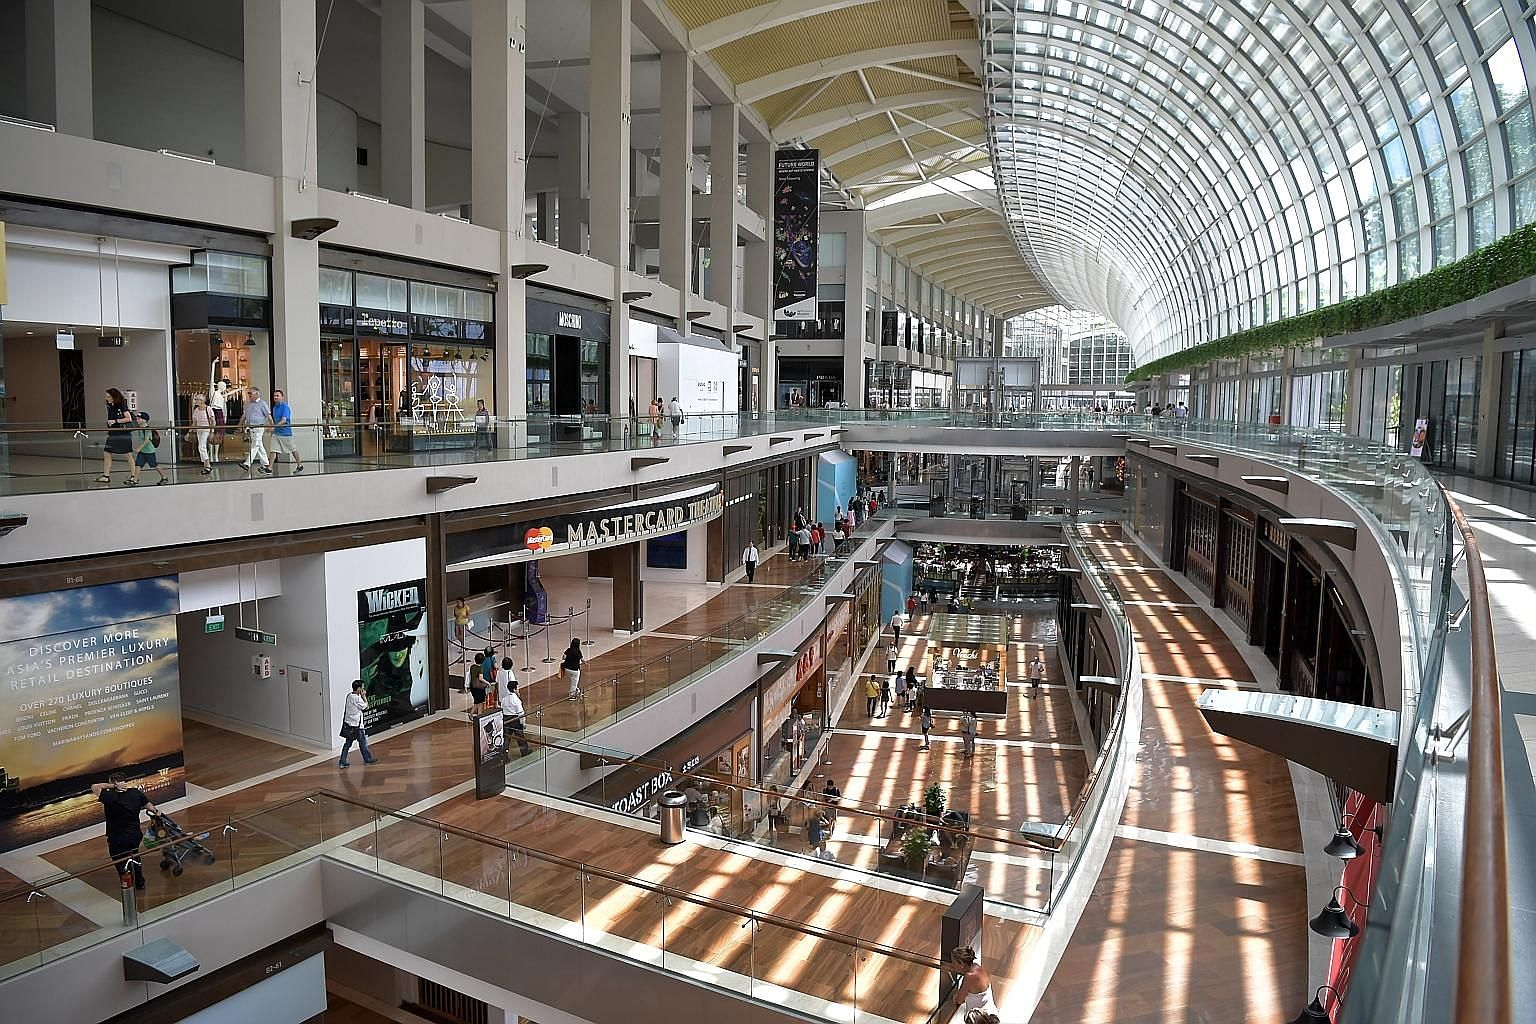 Proceeds from the sale of nearly half of Las Vegas Sands' stake in The Shoppes at Marina Bay Sands could be used in the company's next investment in Japan or South Korea.